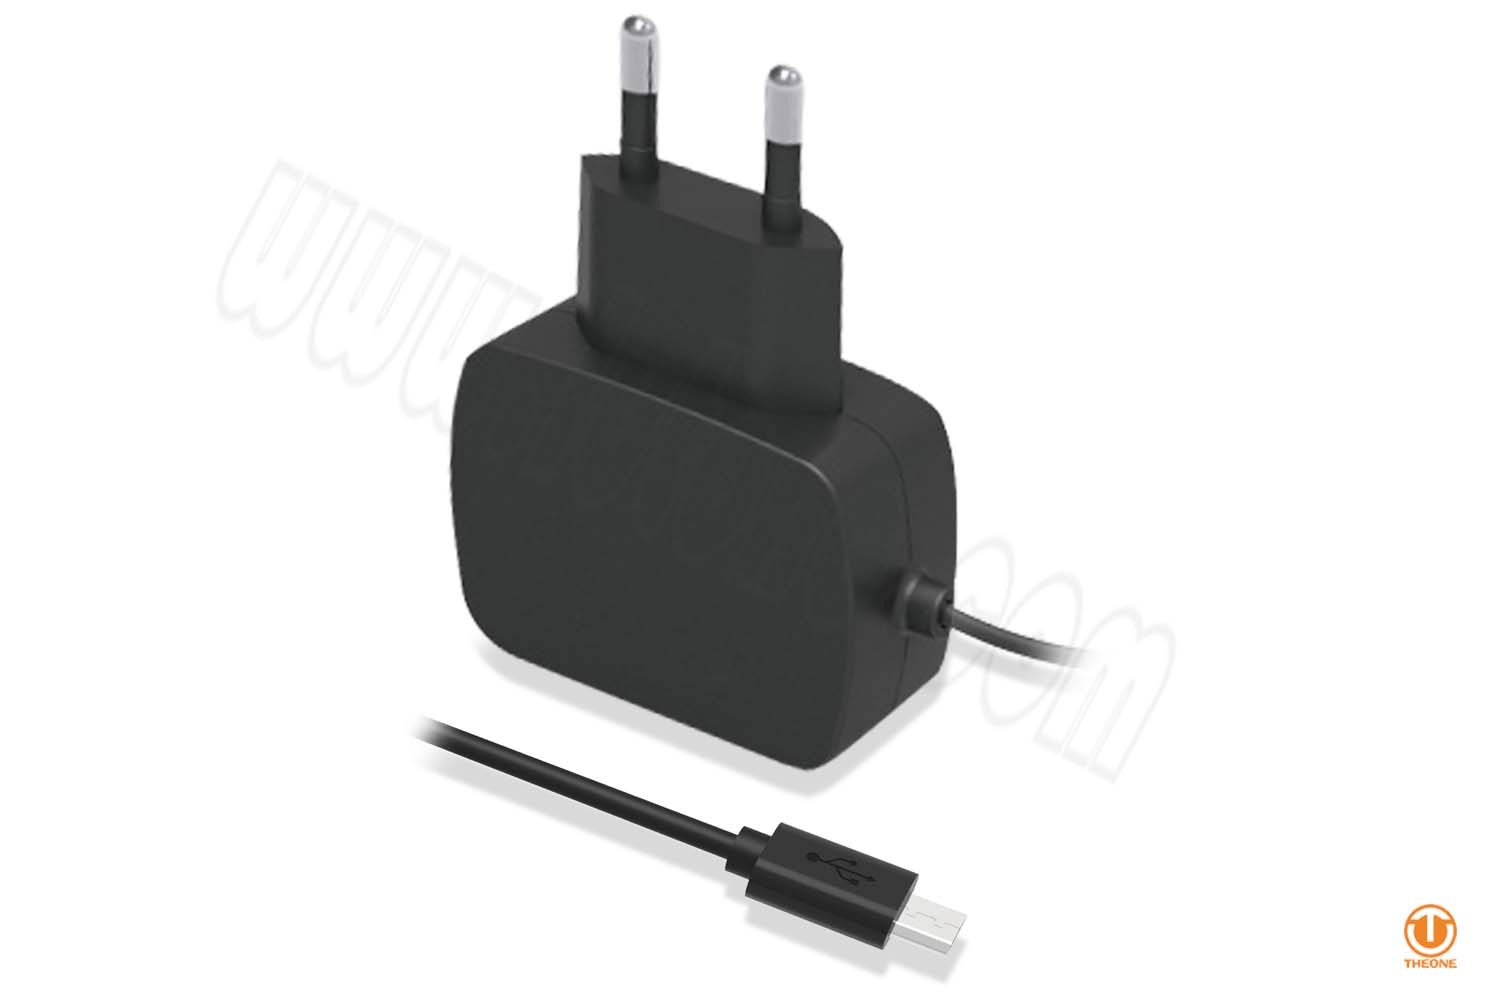 tc02b7-1 wired wall charger